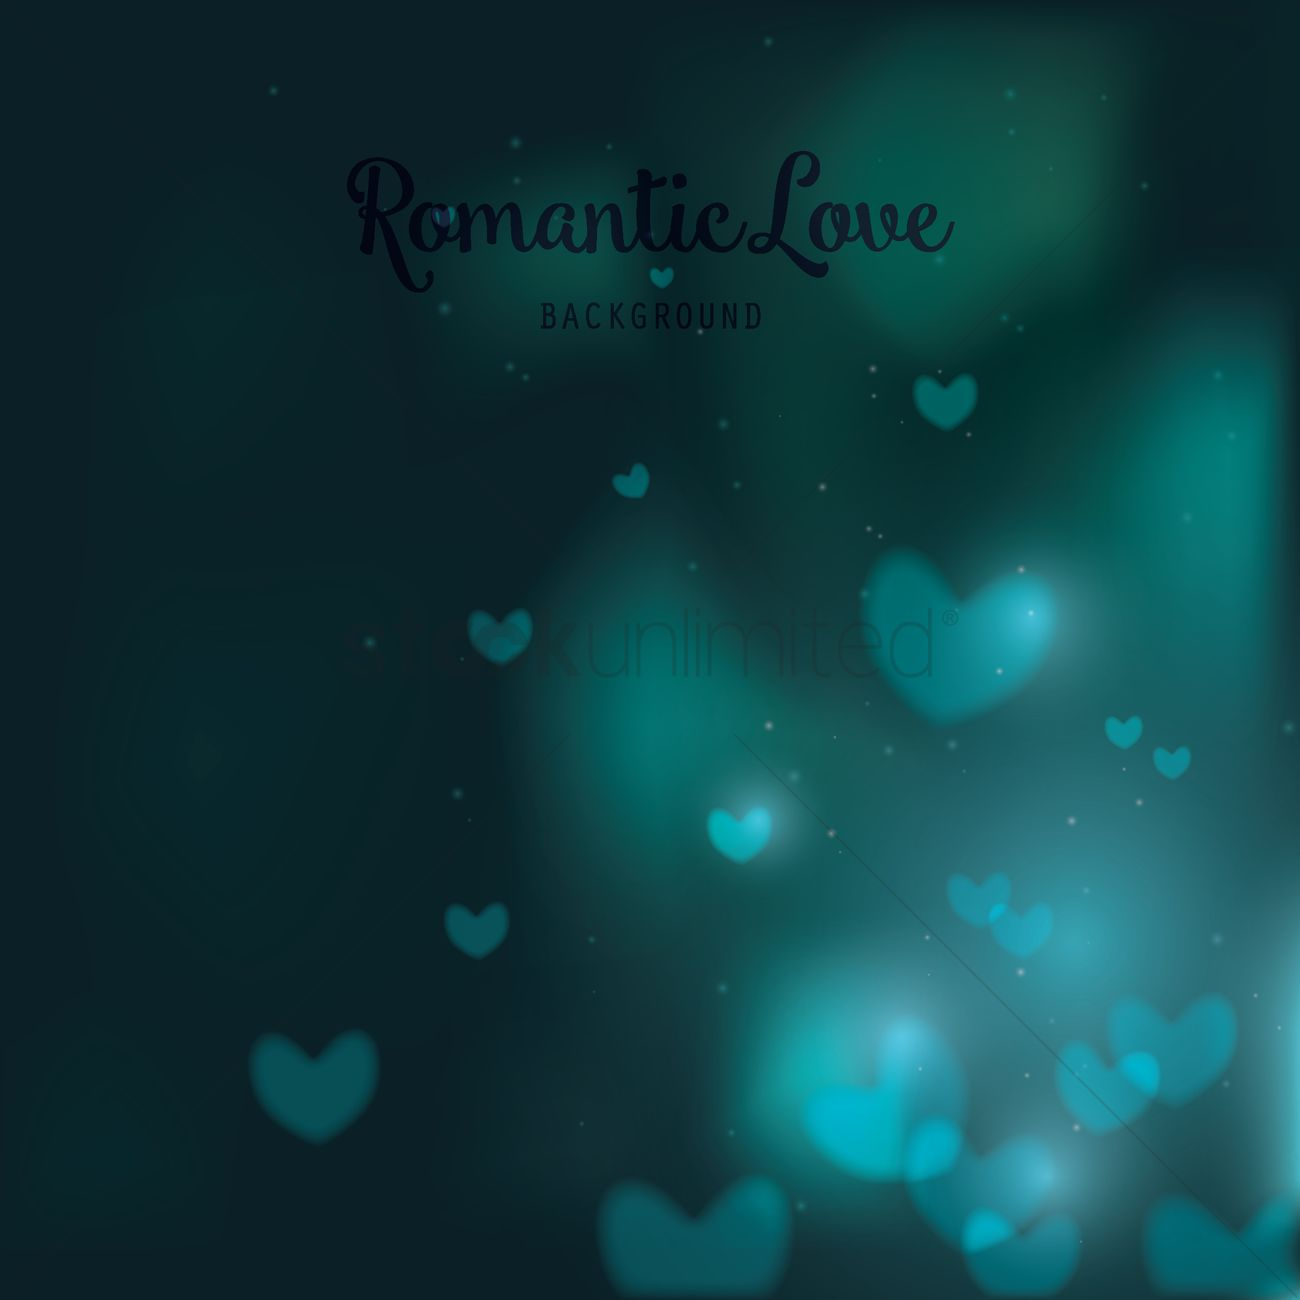 Romantic Love Background Vector Image 1800042 Stockunlimited